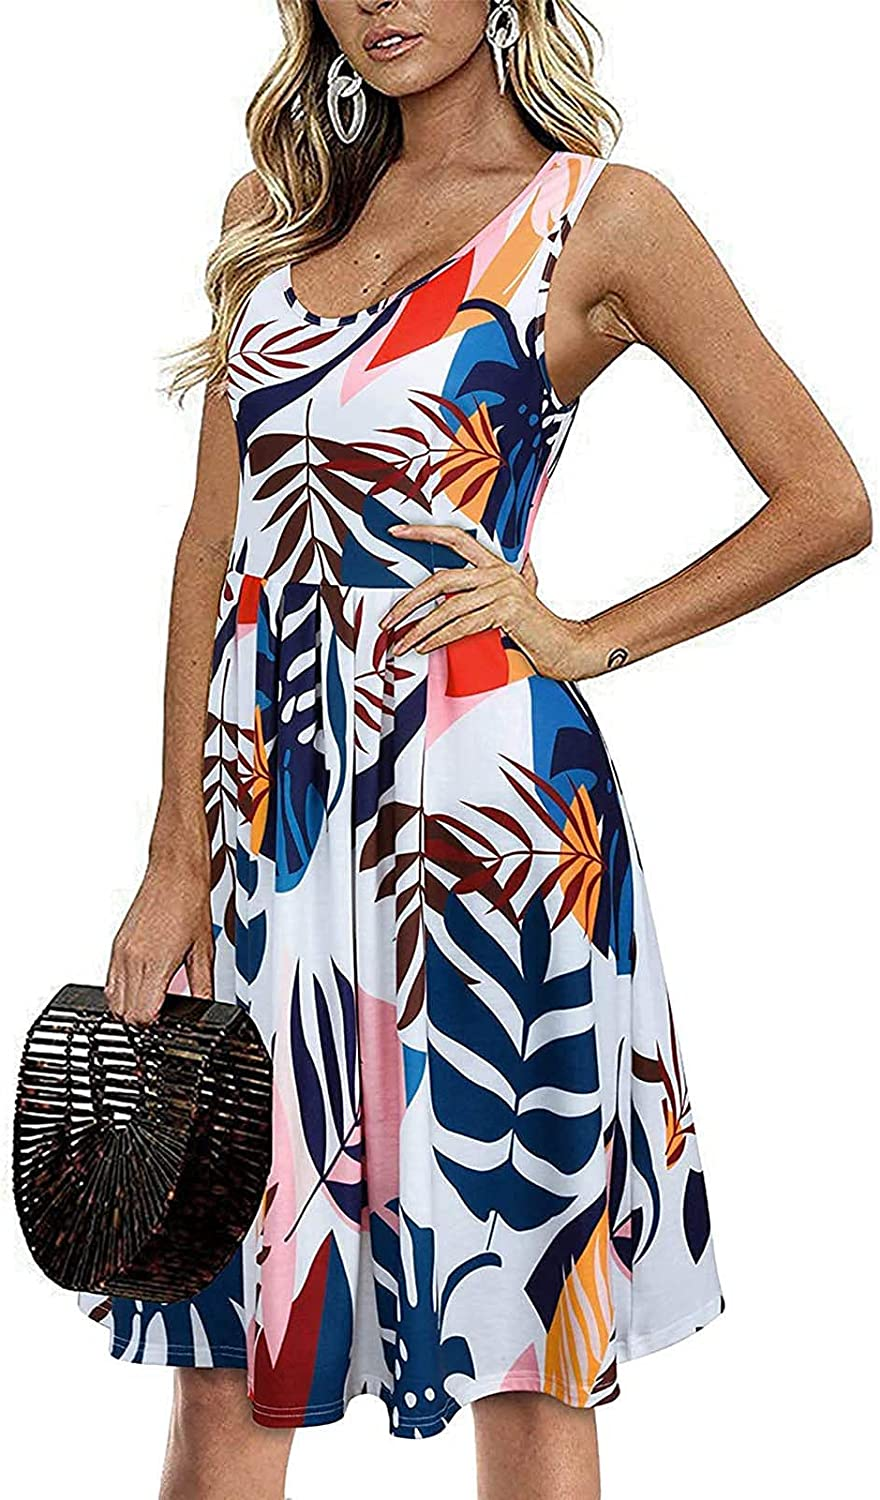 Summer Dresses for Women Floral Print Spring Crew Neck Beach Boho Sundress Plus Size Loose Elastic Fit Cover Up